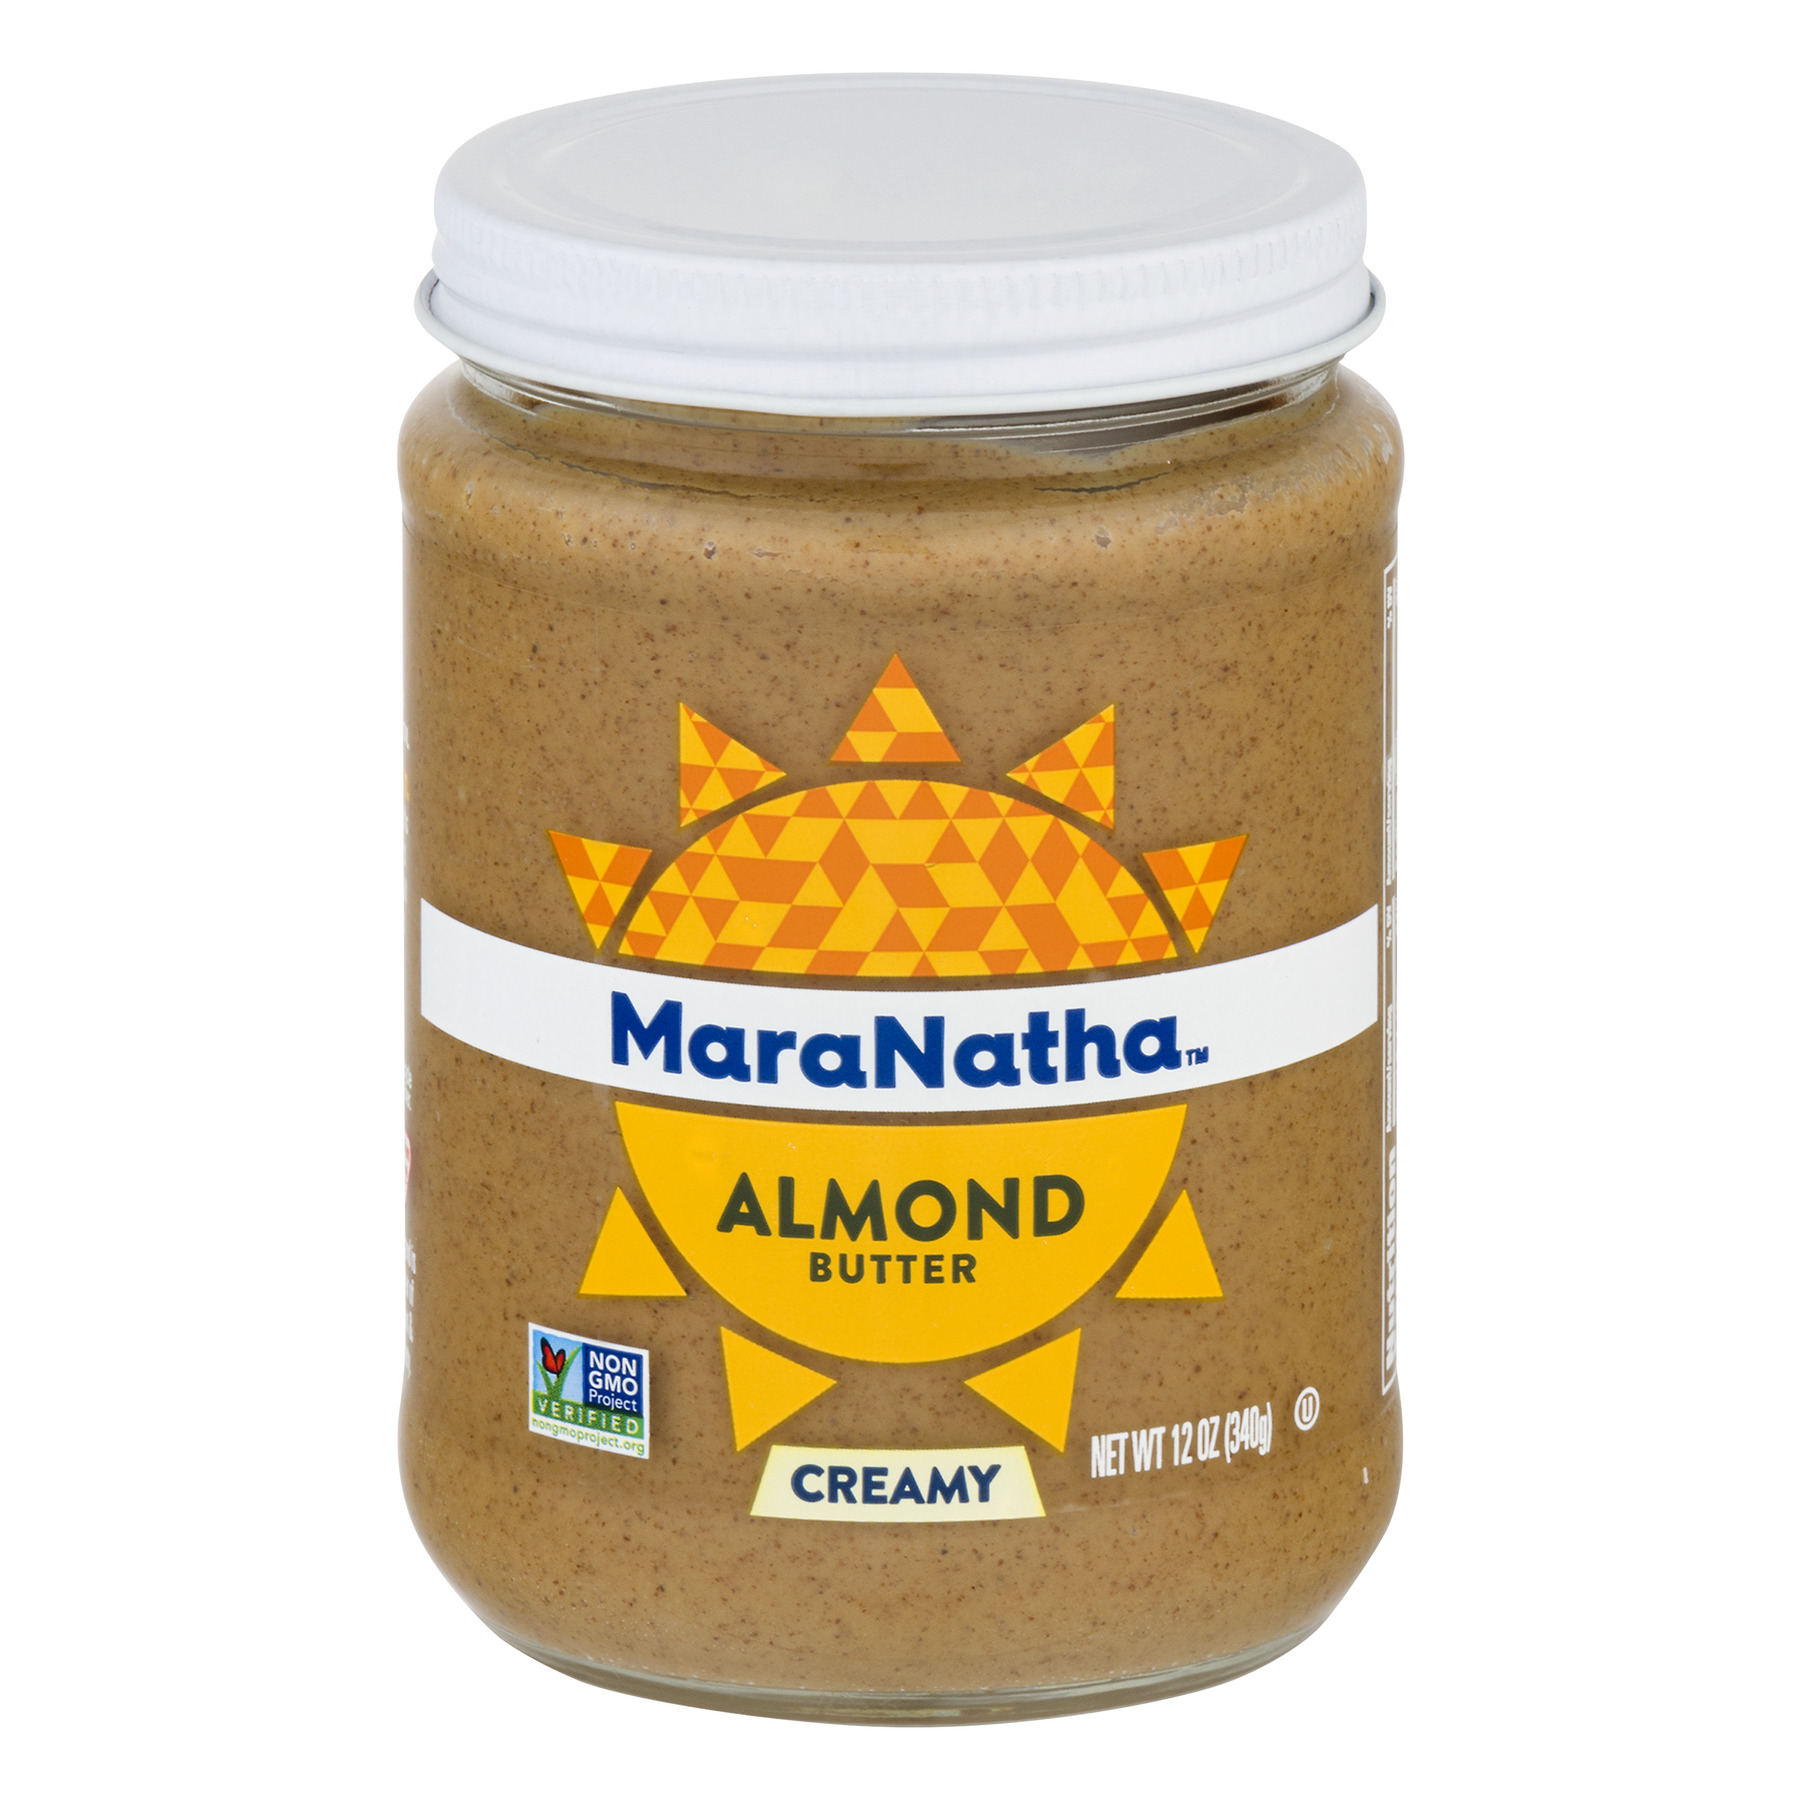 MaraNatha No Stir Creamy Almond Butter, 12 oz.